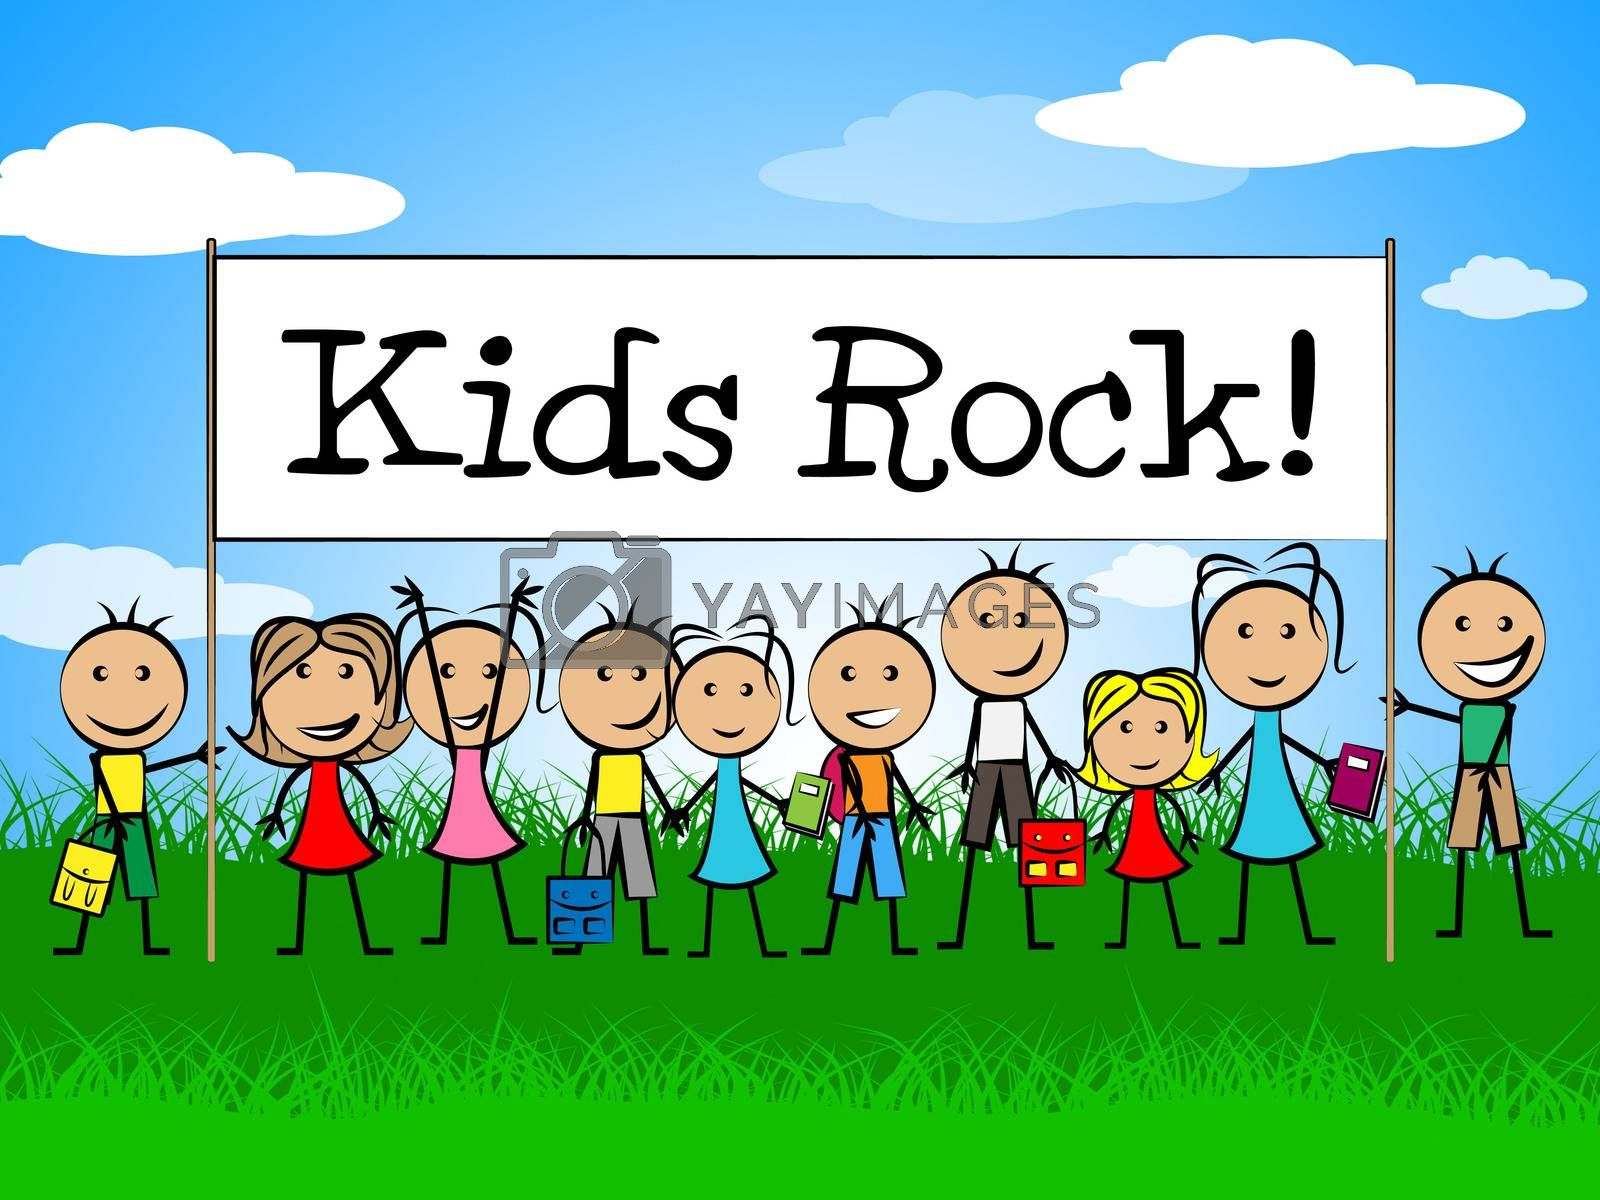 Kids Rock Banner Shows Free Time And Child by stuartmiles